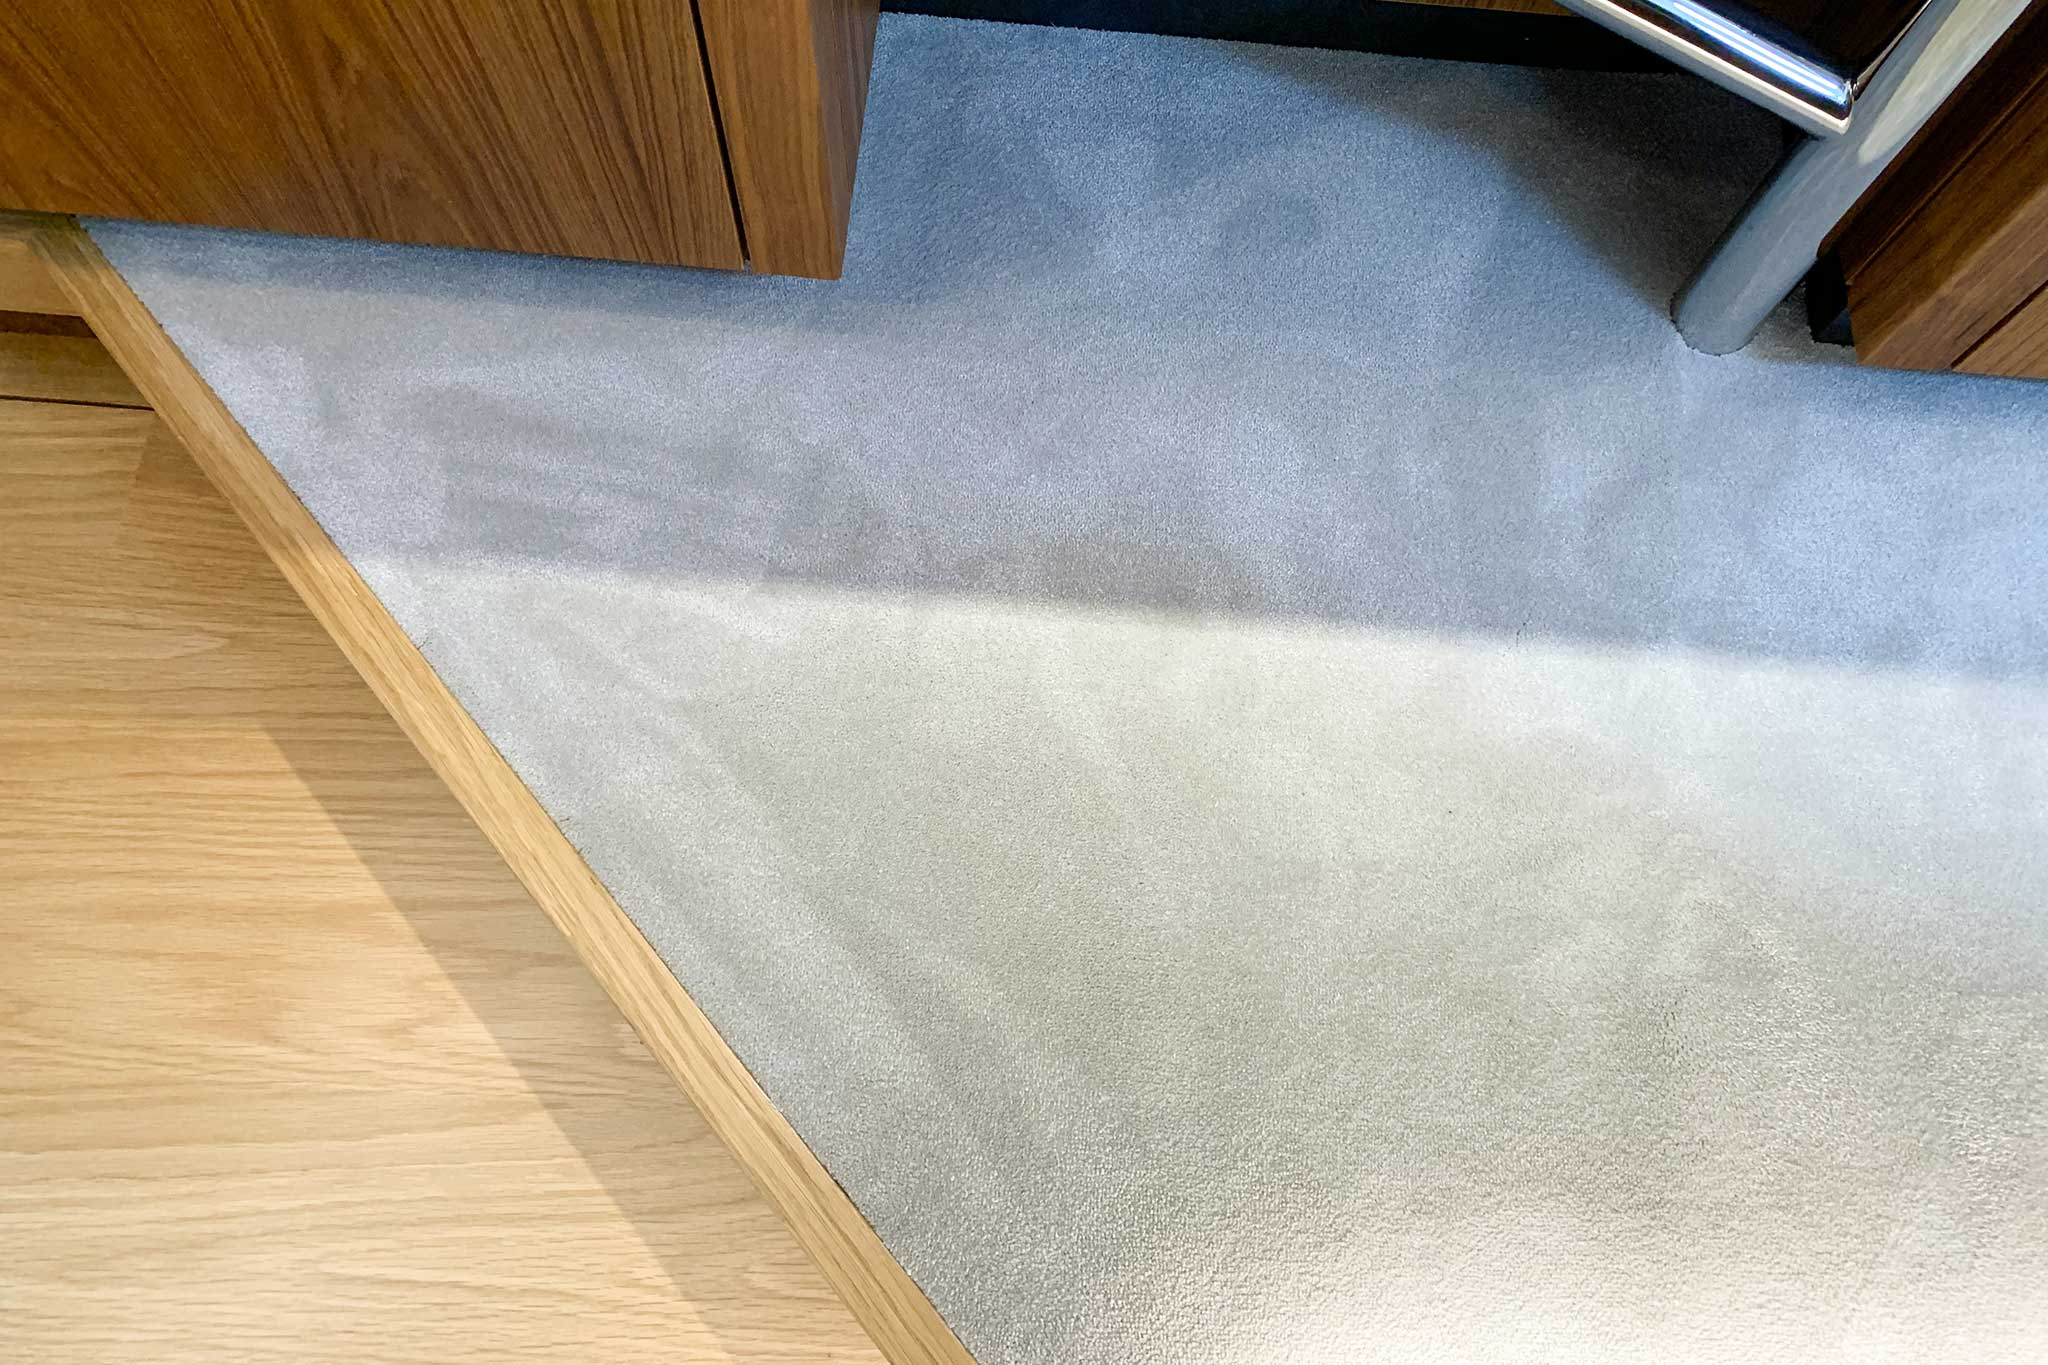 Non-slip Bound Carpets Onboard A Yacht